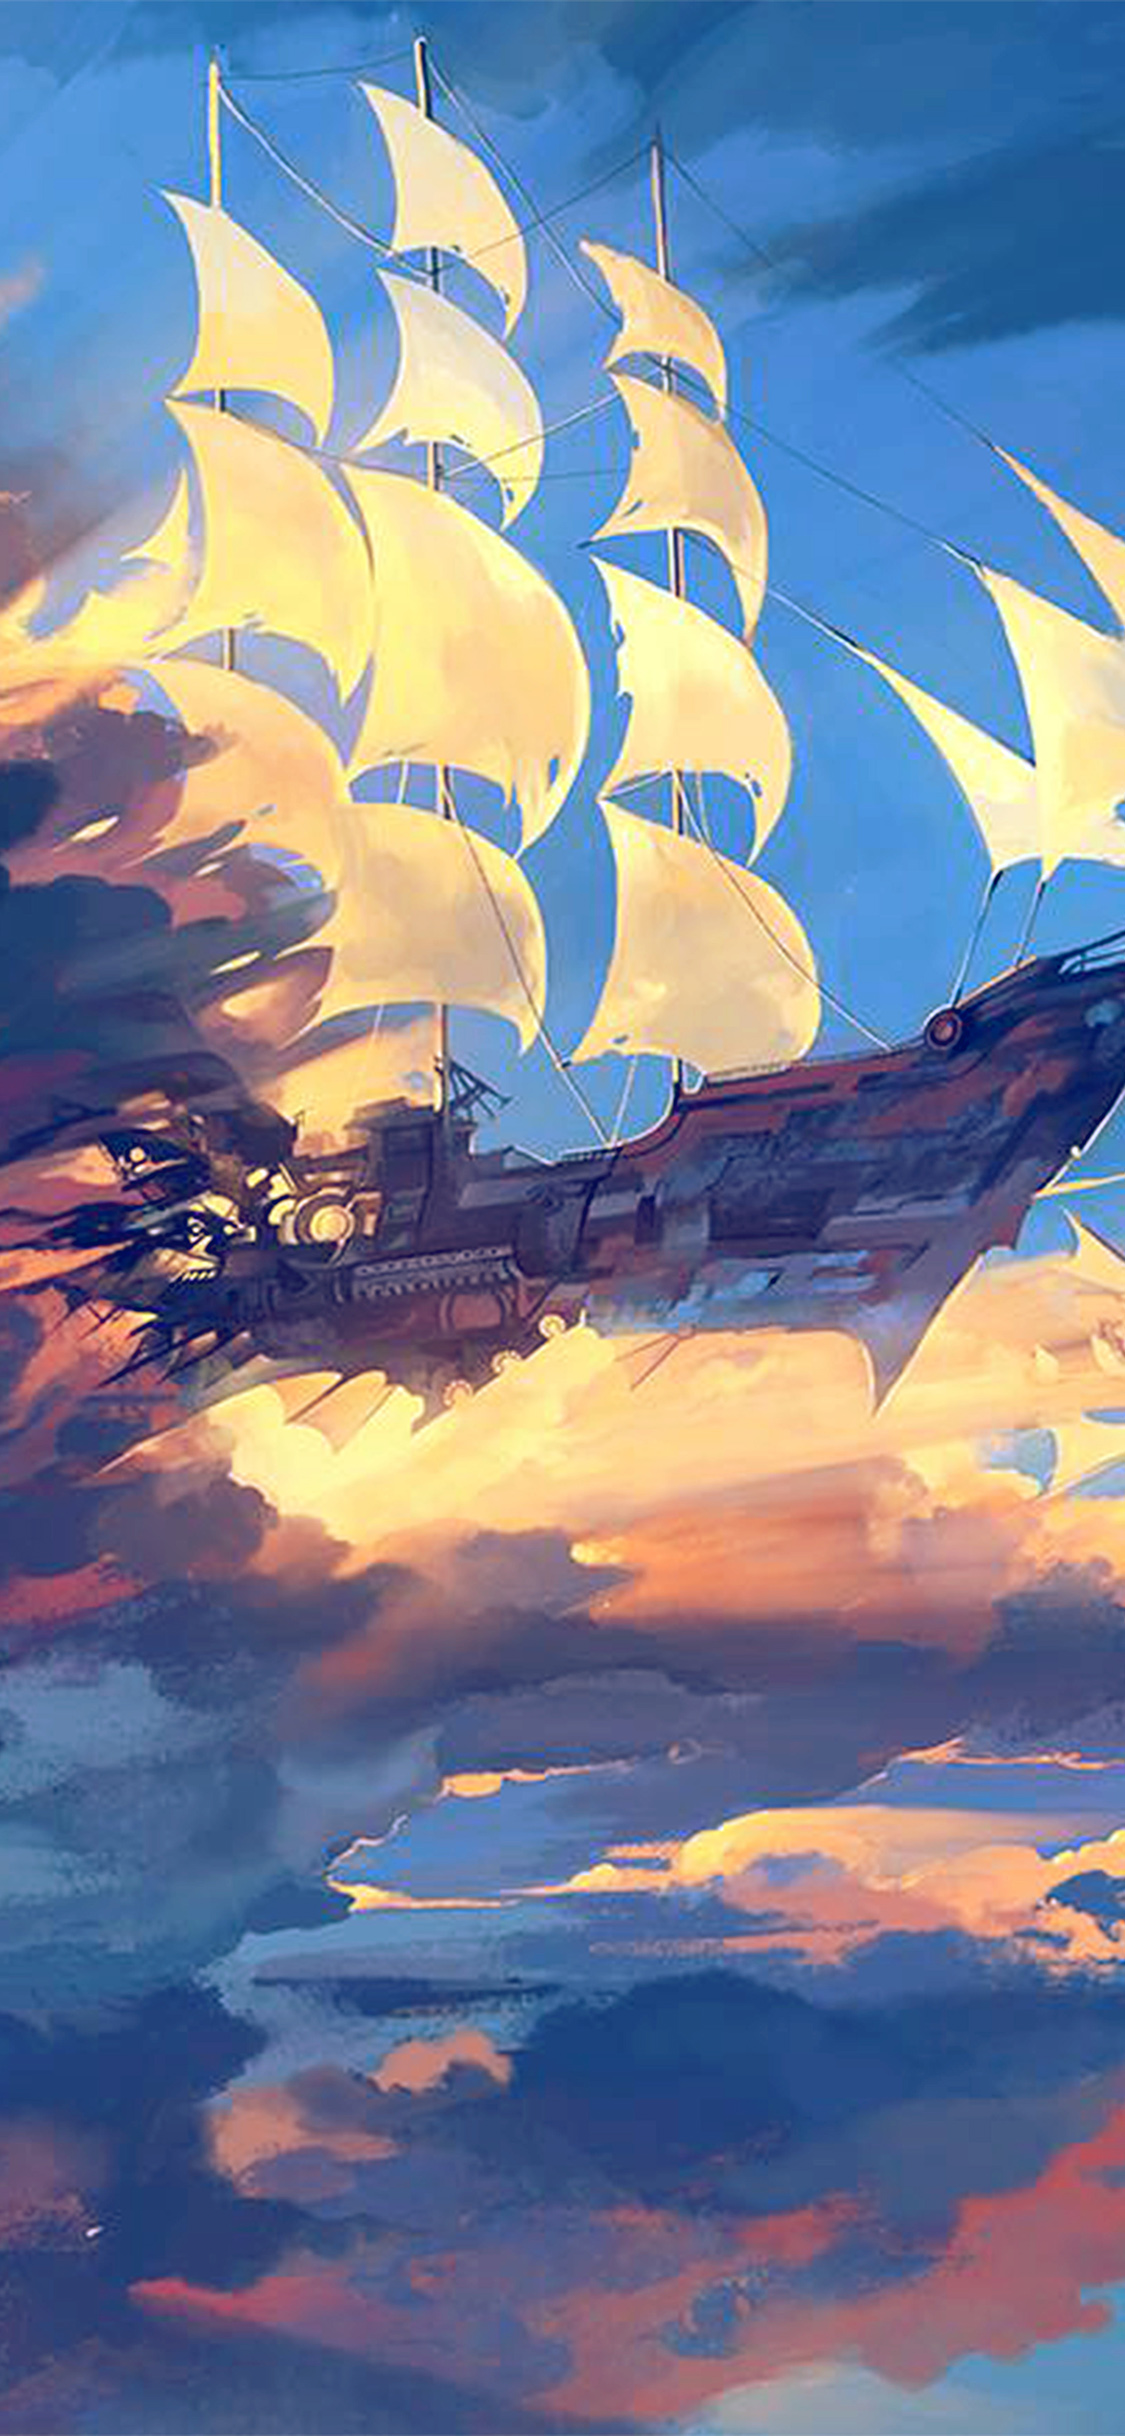 iPhonexpapers.com-Apple-iPhone-wallpaper-az68-fly-ship-anime-illustration-art-blue